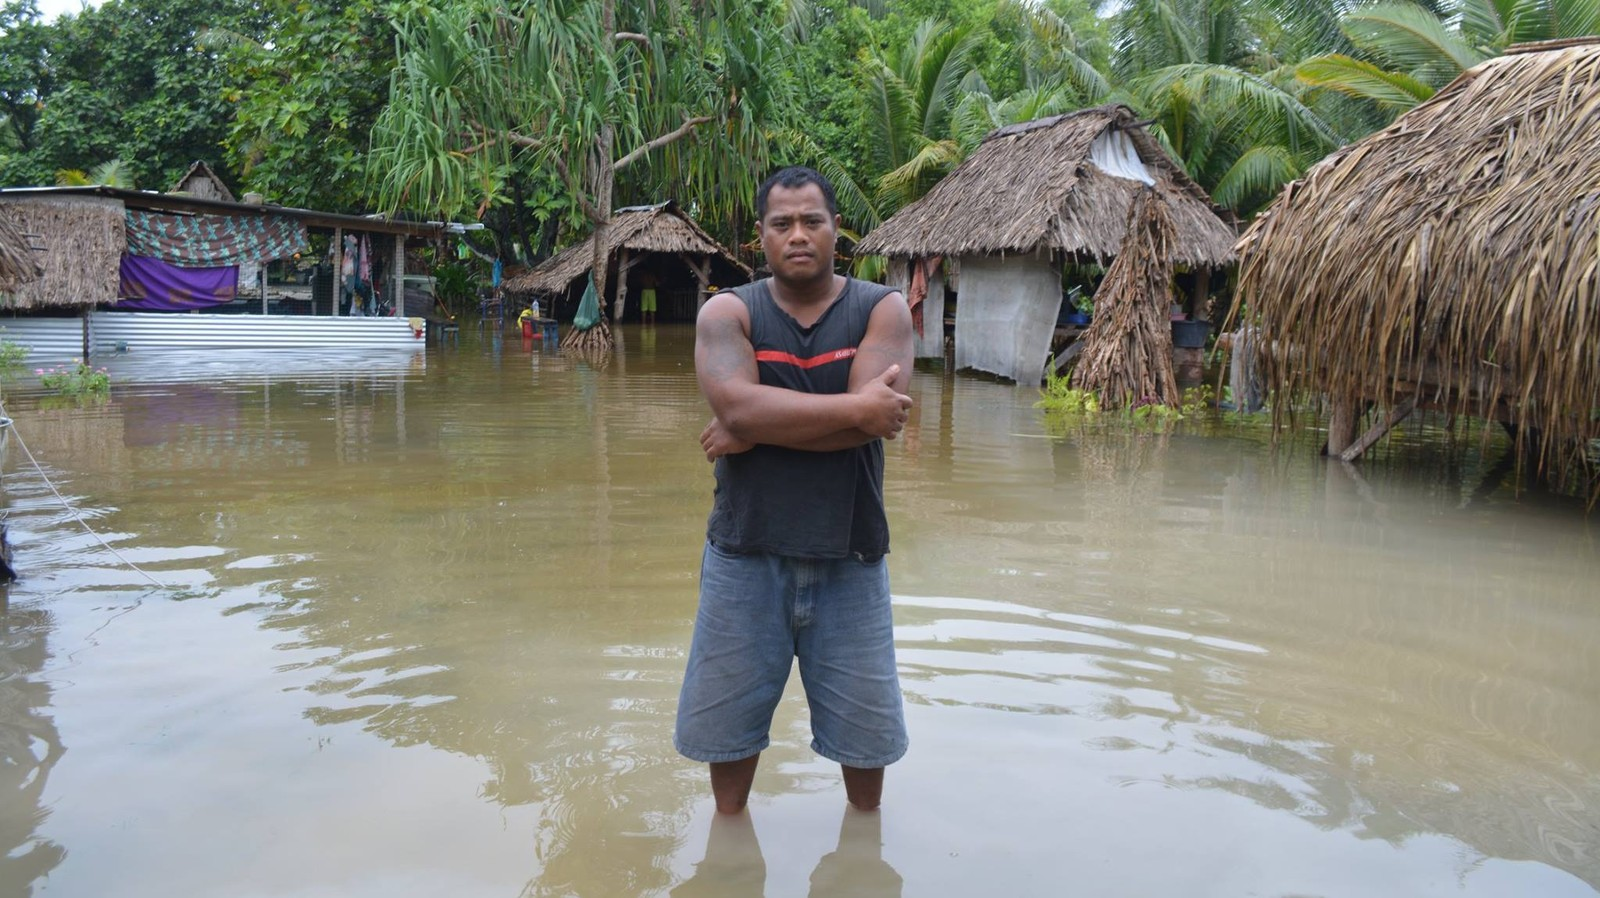 The Climate Crisis Isn't Just Taking Pacific Islanders' Homes, It's Taking Our Identities